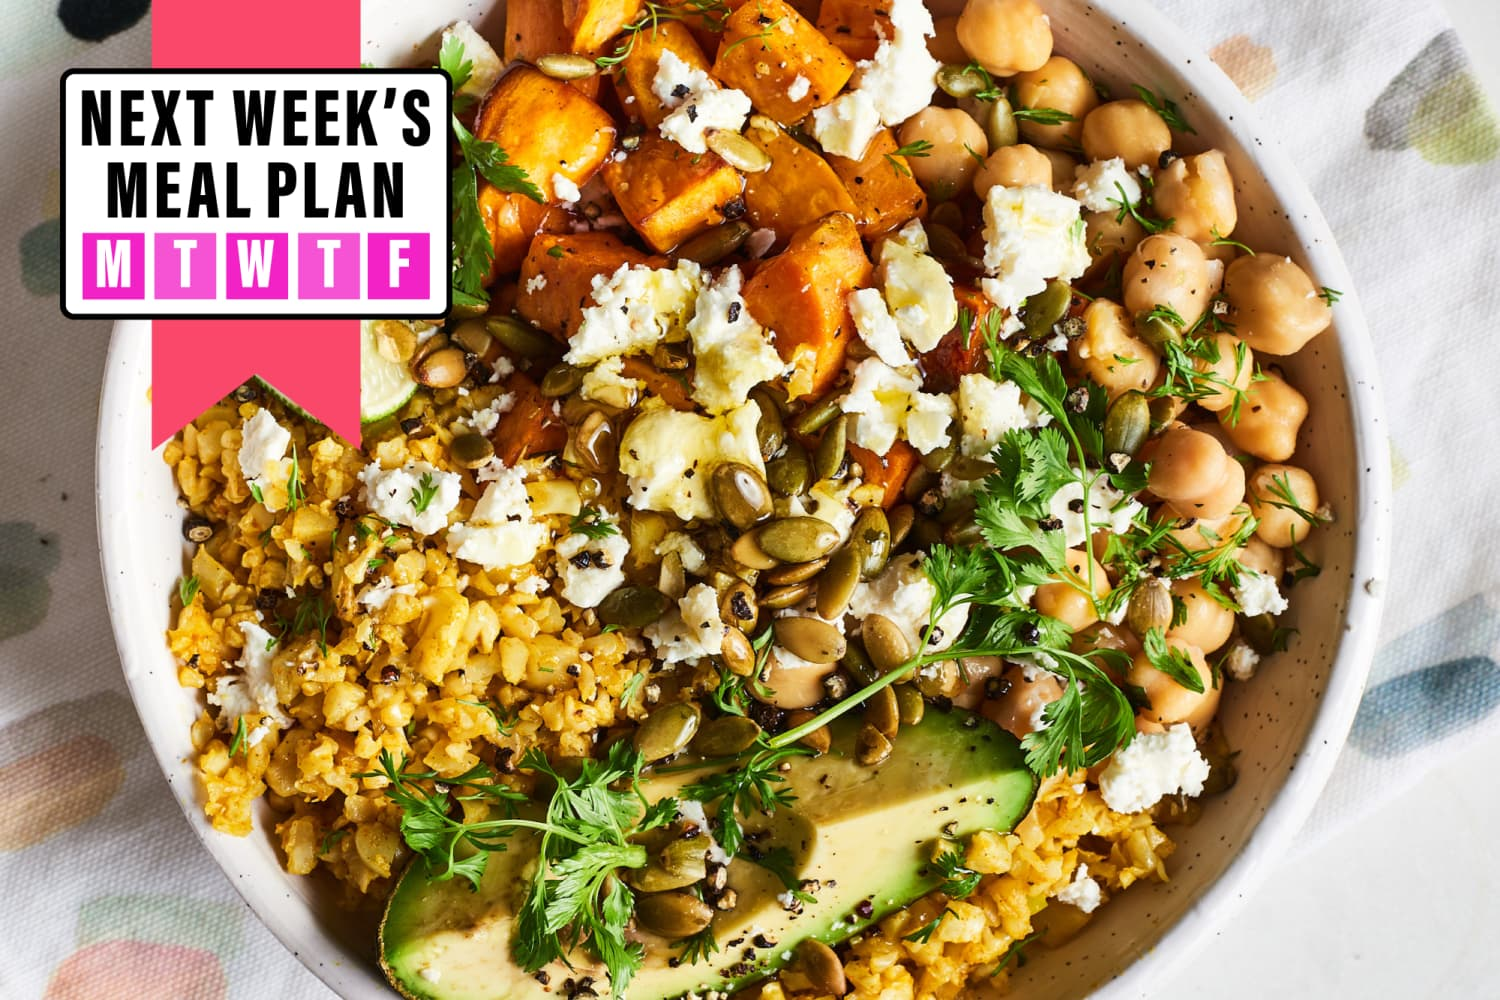 Next Week's Meal Plan: 5 Cold-Weather Family-Friendly Dinners